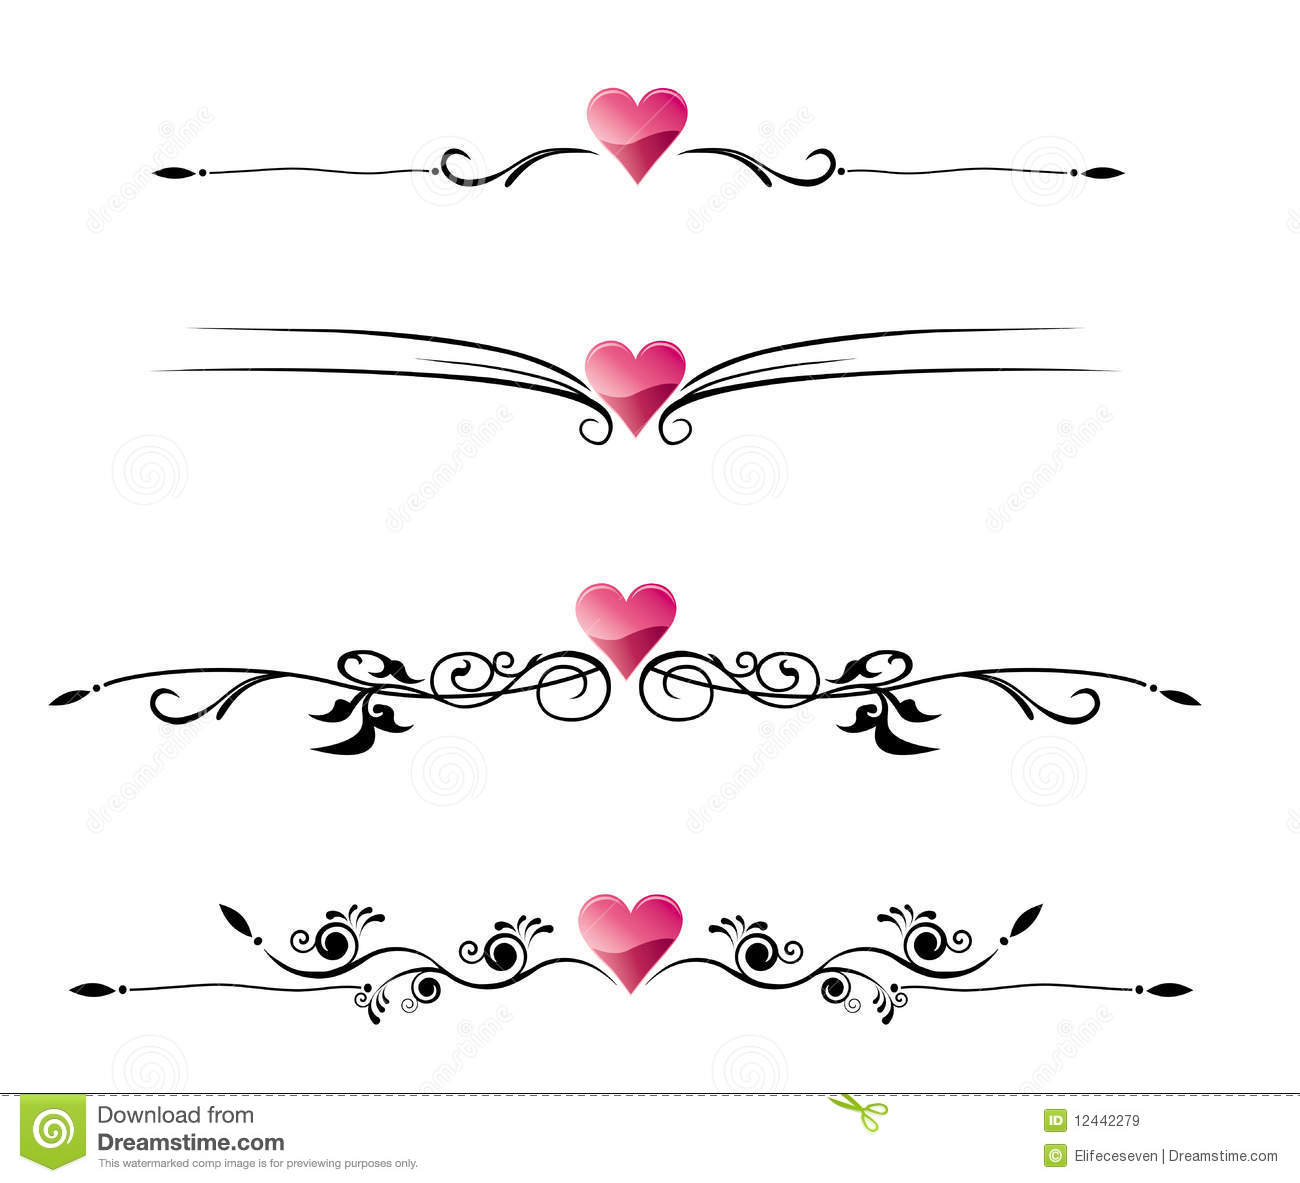 Love border stock vector. Illustration of gothic, text.